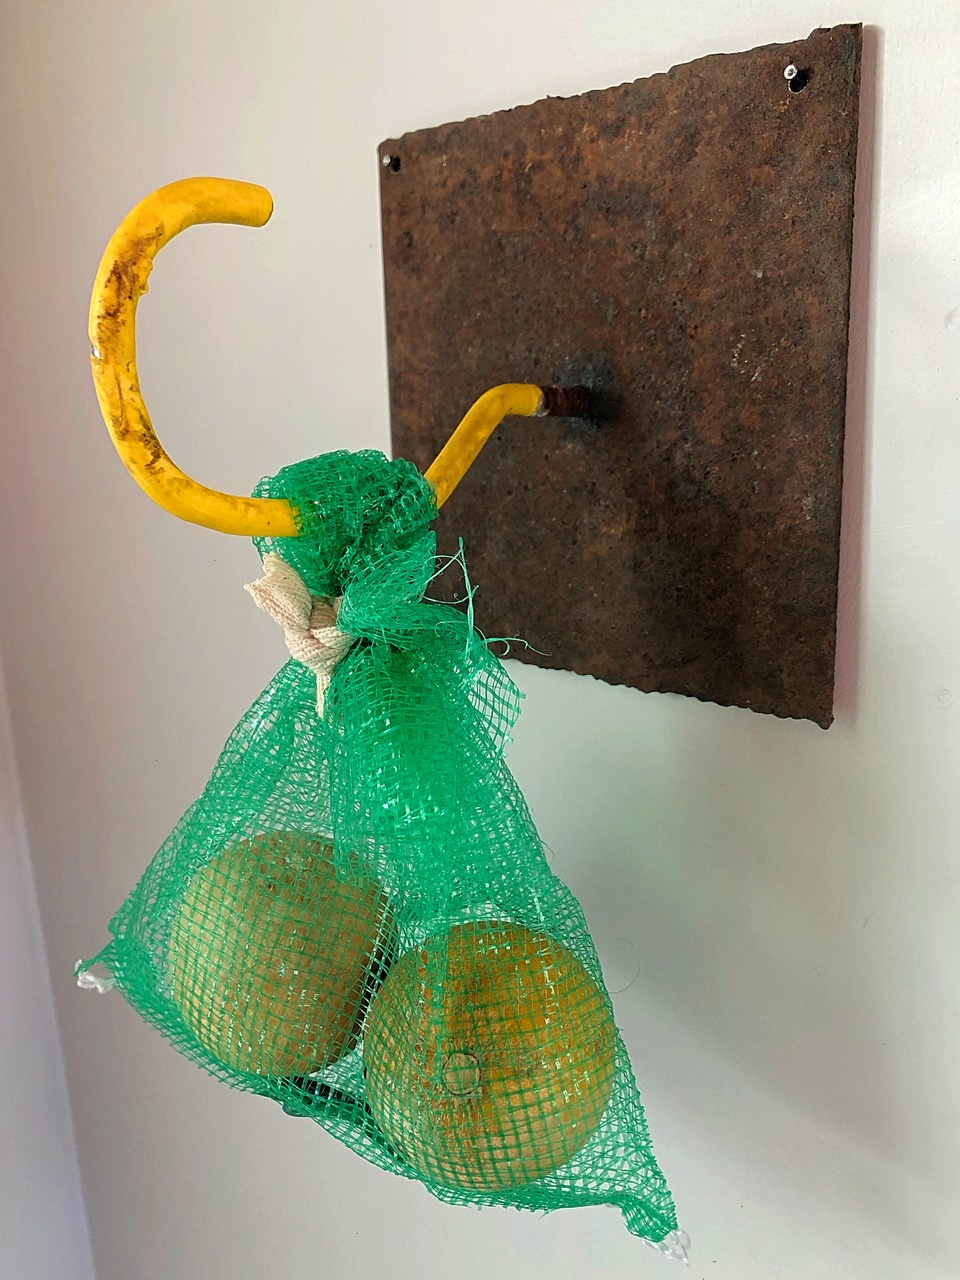 "CLOSER, 2021 | Steel plate, utility hook, bag and gourds, 10"" x 6"" x 6"" 